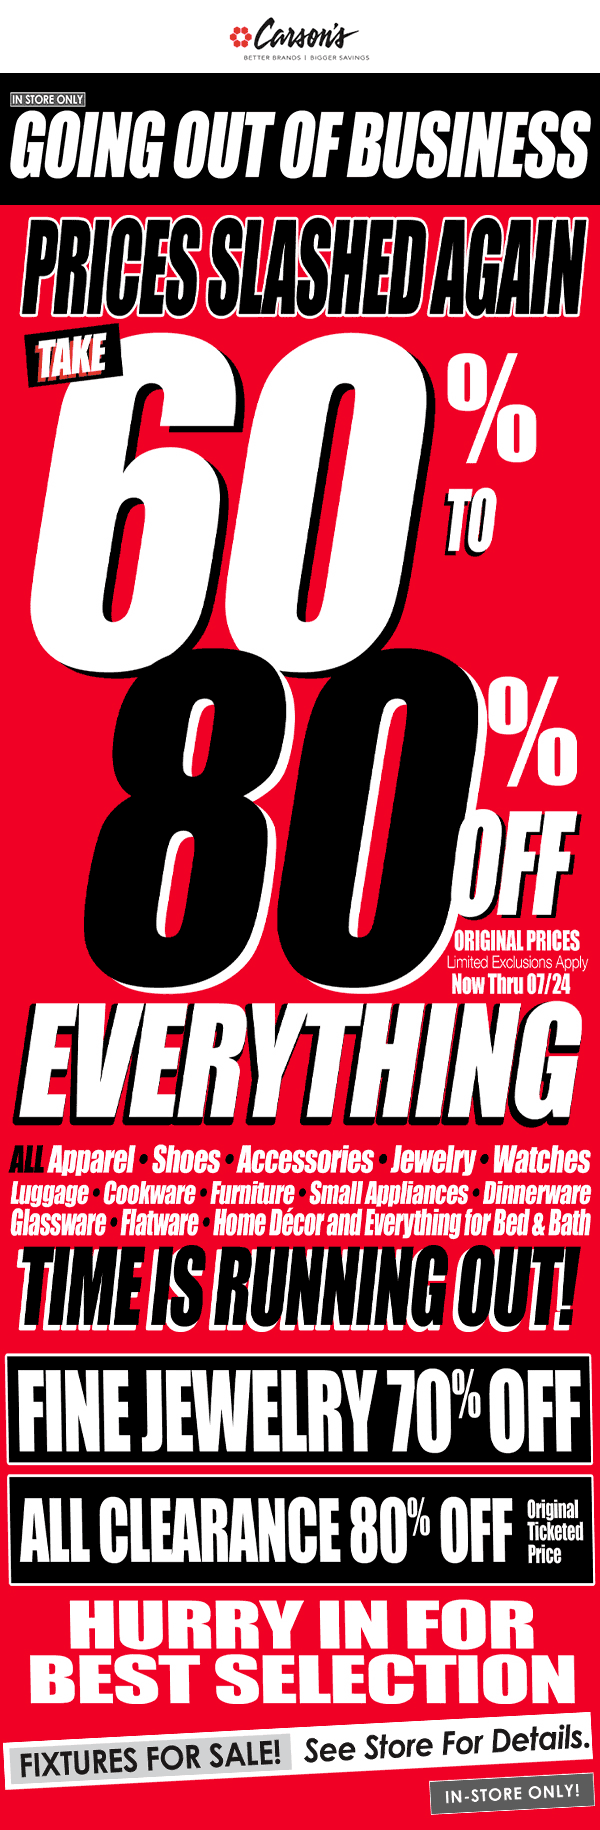 Carsons Coupon June 2019 60-80% off everything at Carsons going out-of-business liquidation